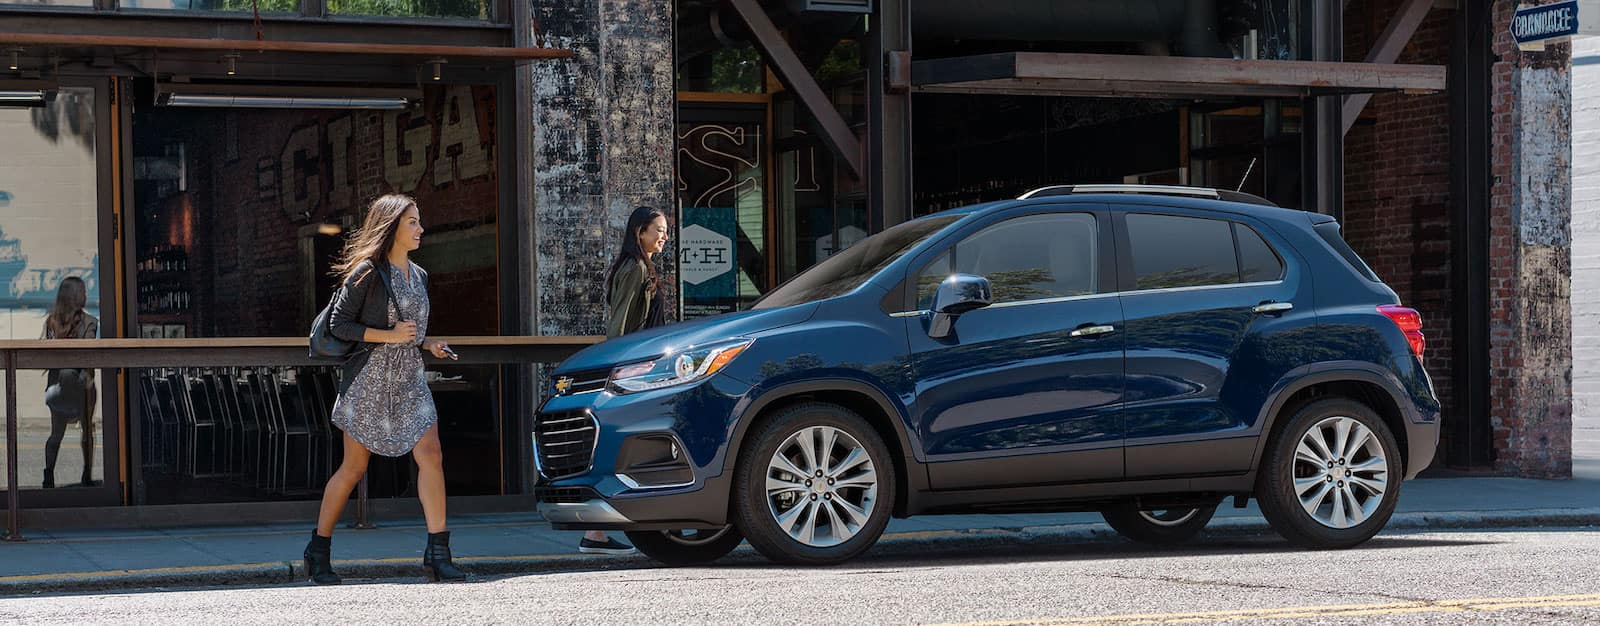 Chevrolet Trax Dealership